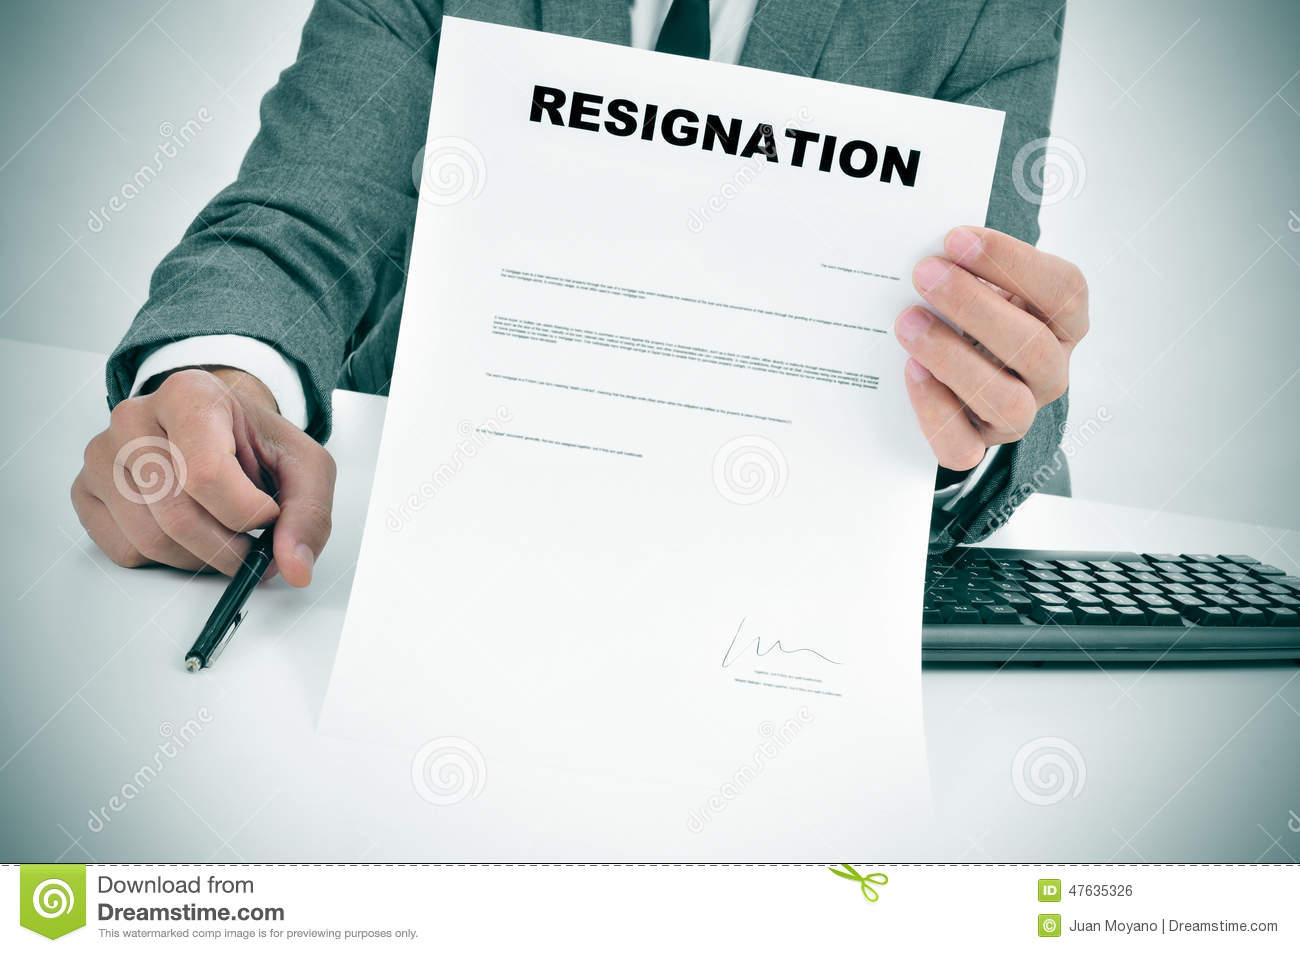 Man in suit showing a figured signed resignation document